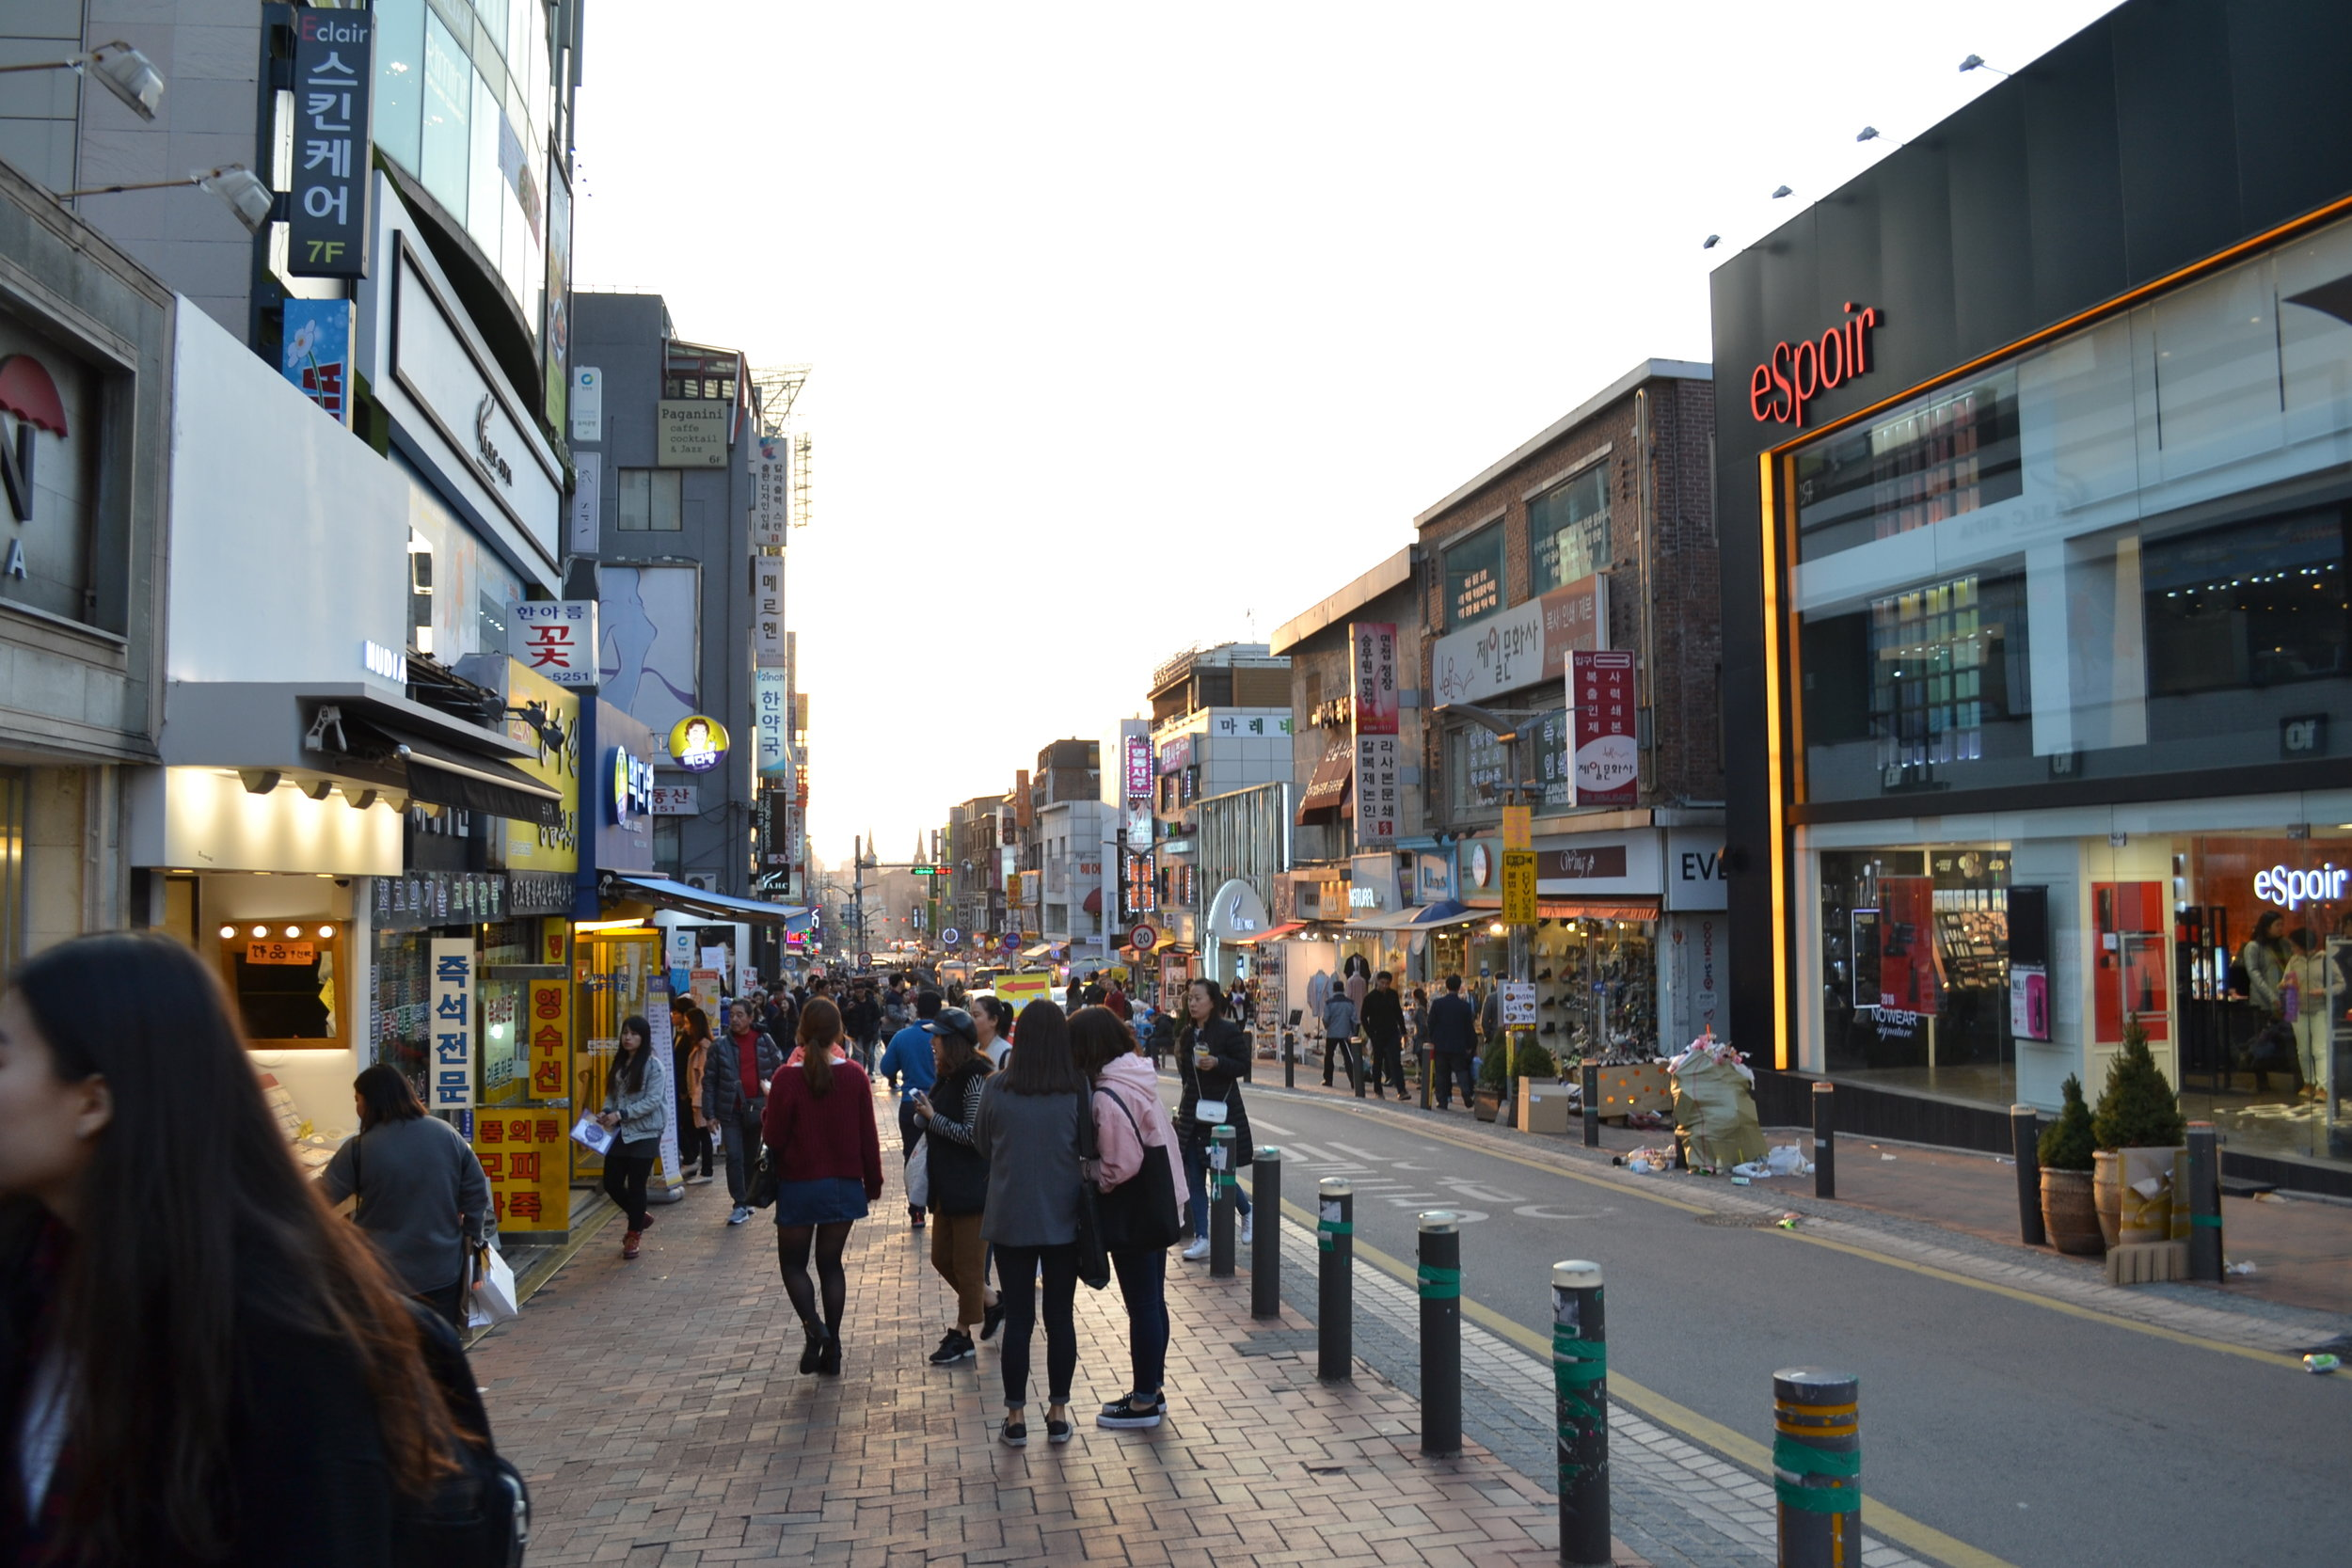 Things to do in Korea - Ewha Women's University, Sinchon, Seoul